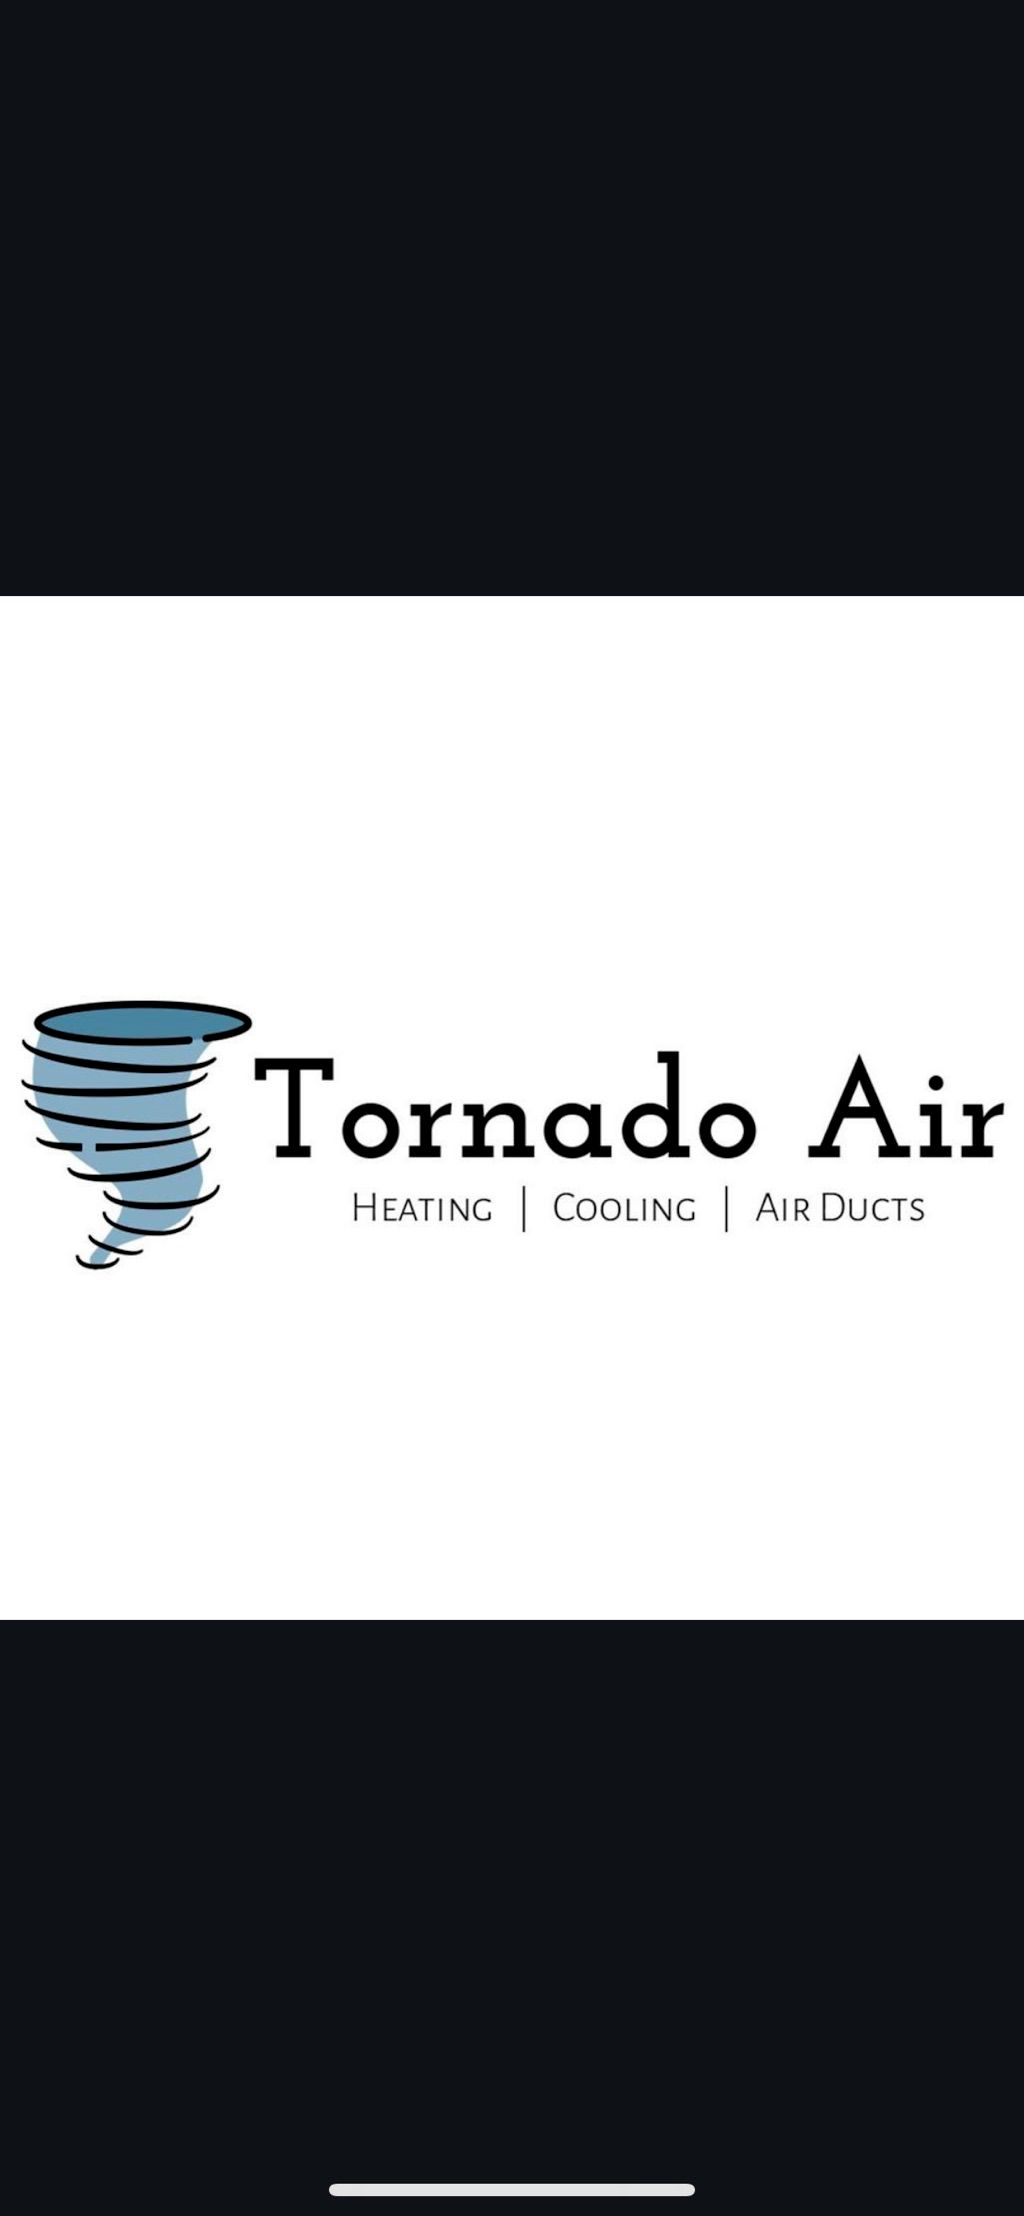 Tornado Air Duct Cleaning